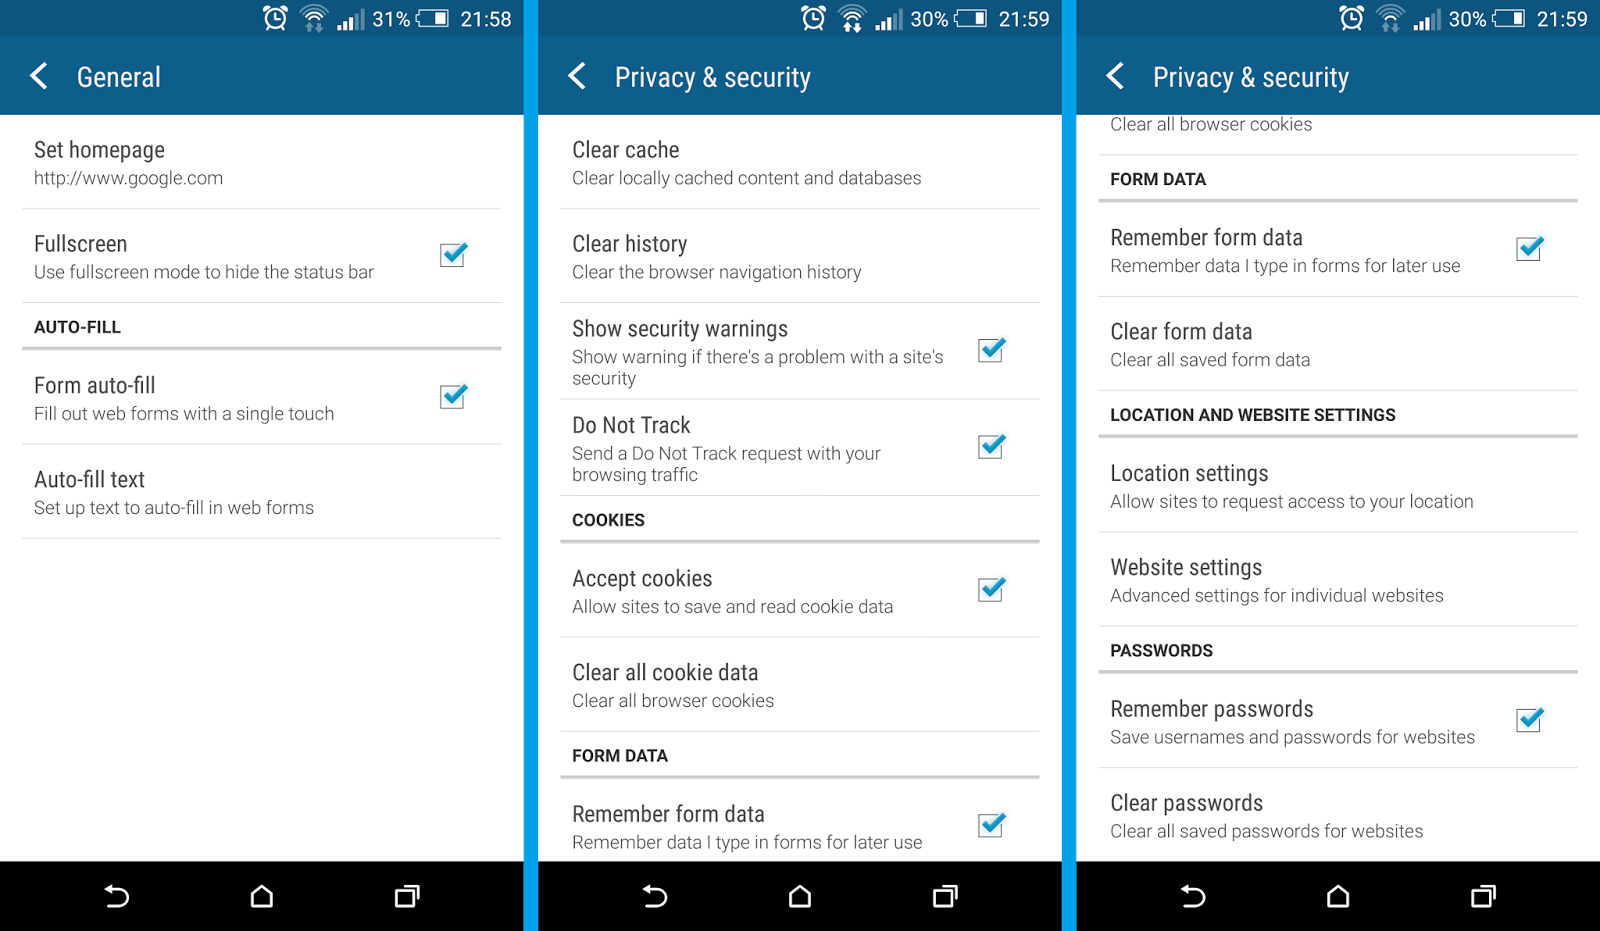 How To Enable And Disable Cookies History, Cookies, Passwords And  More), As Well As Accessibility Options (text